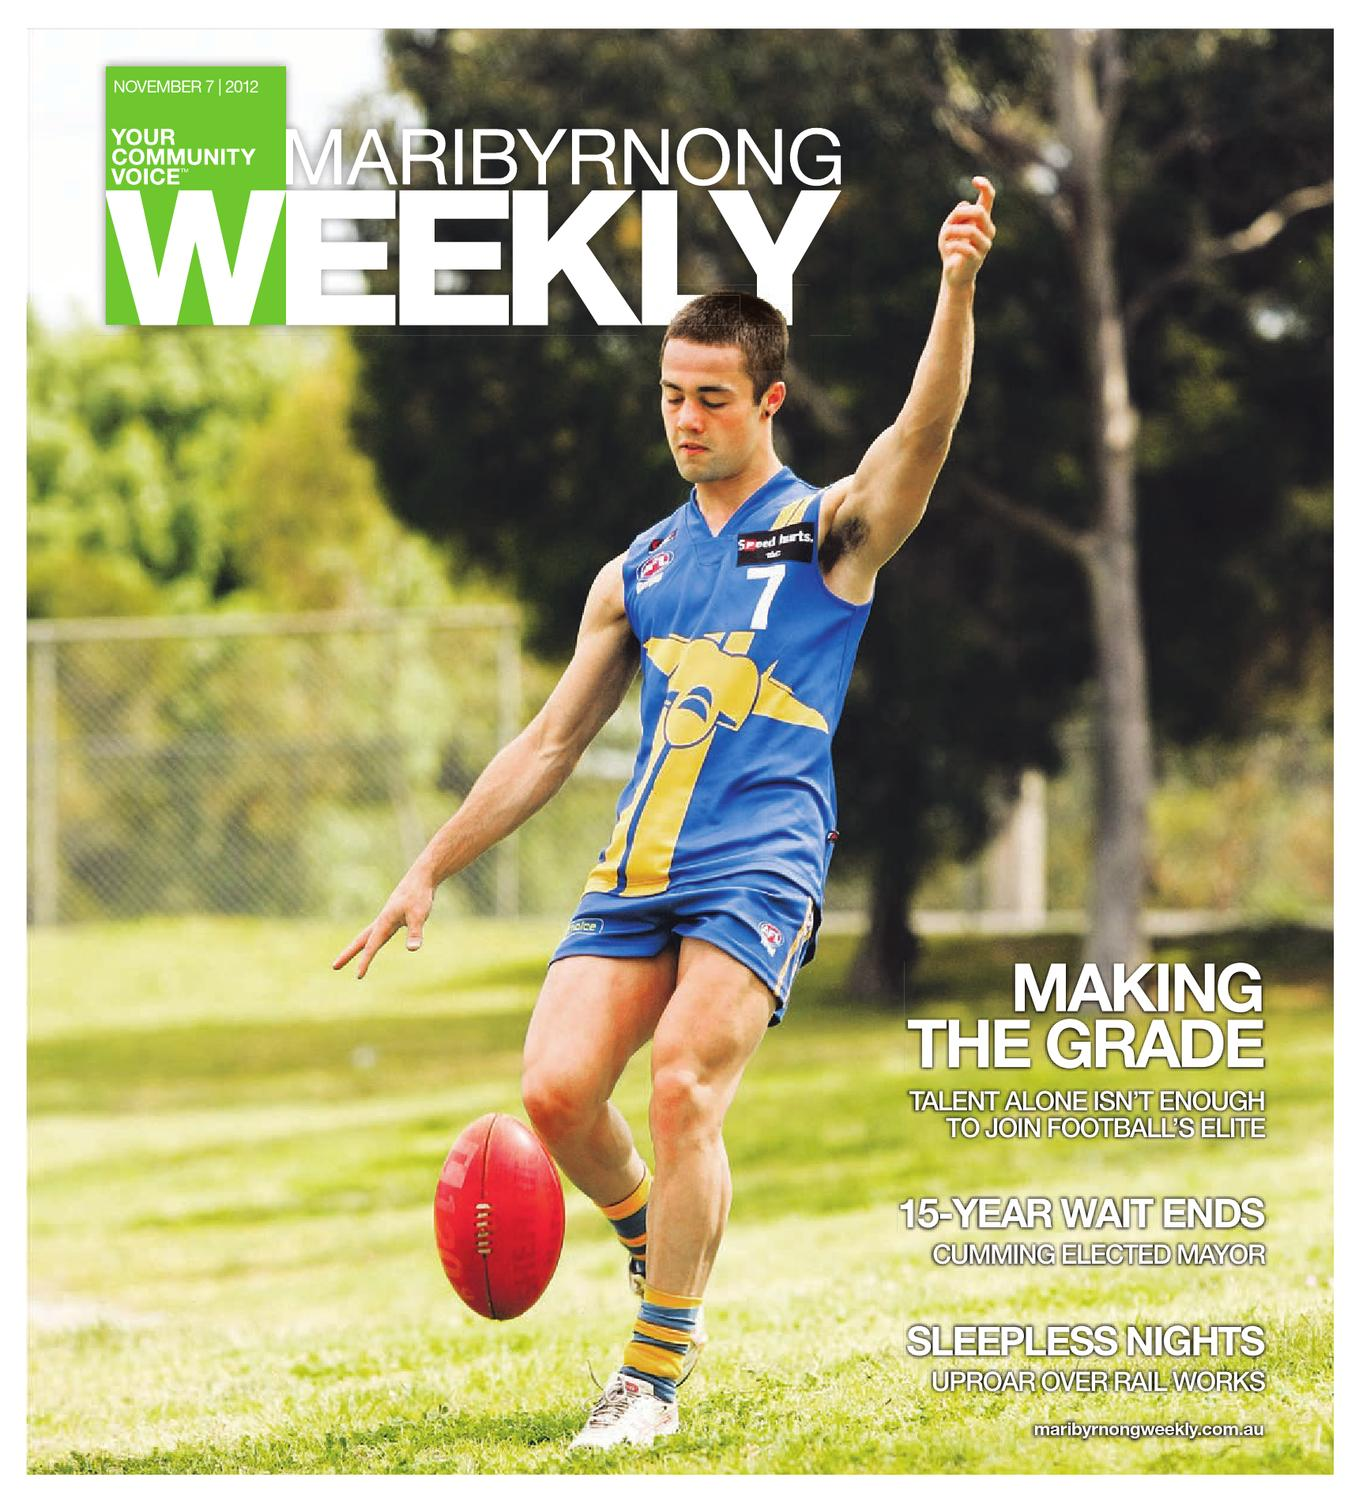 11b4c40f3165 Maribyrnong Weekly 07-11-2012 by The Weekly Review - issuu